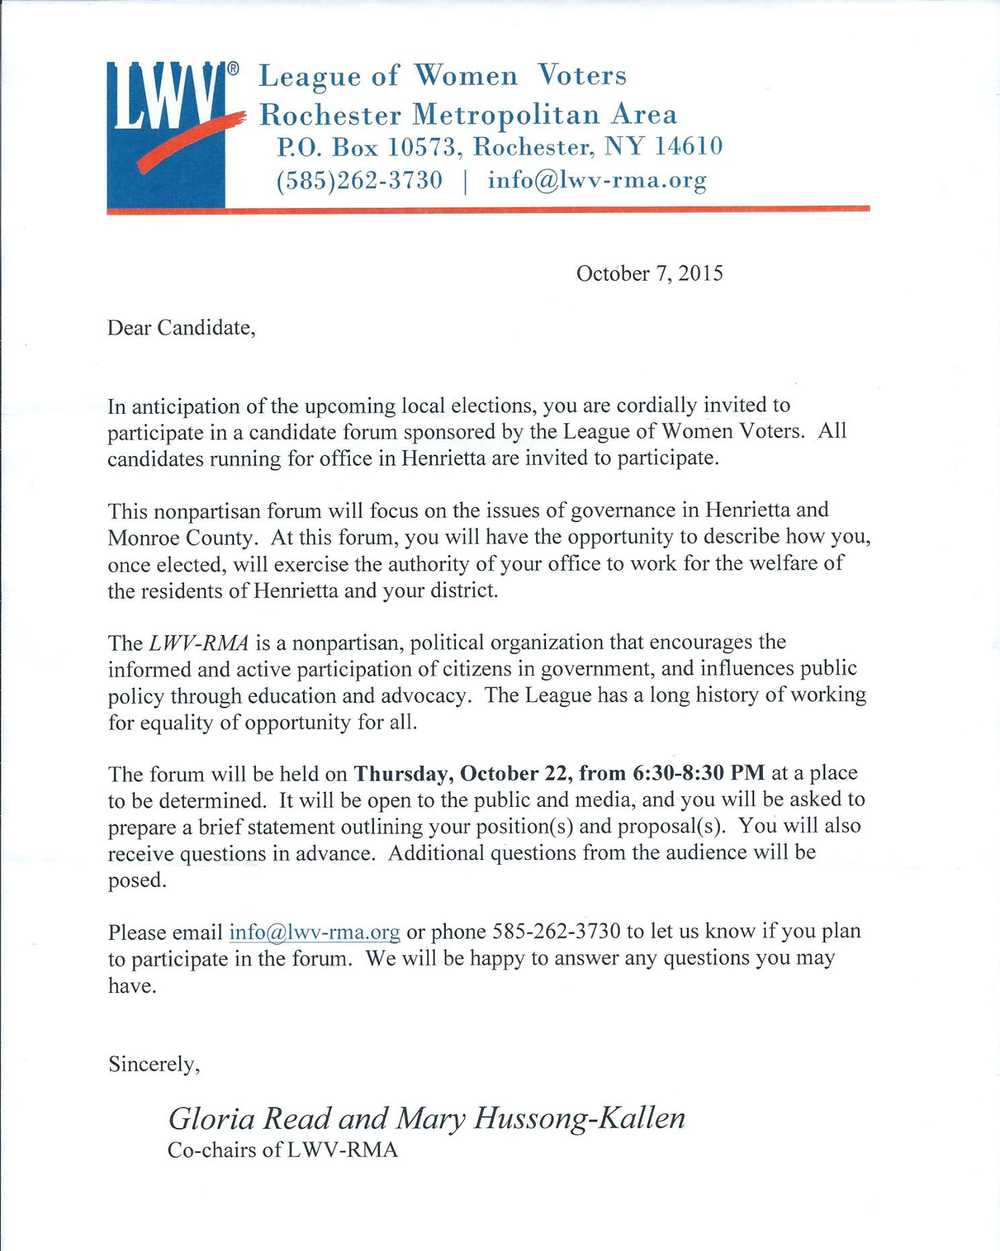 A copy of the invitation all candidates received from the League of Women Voters.